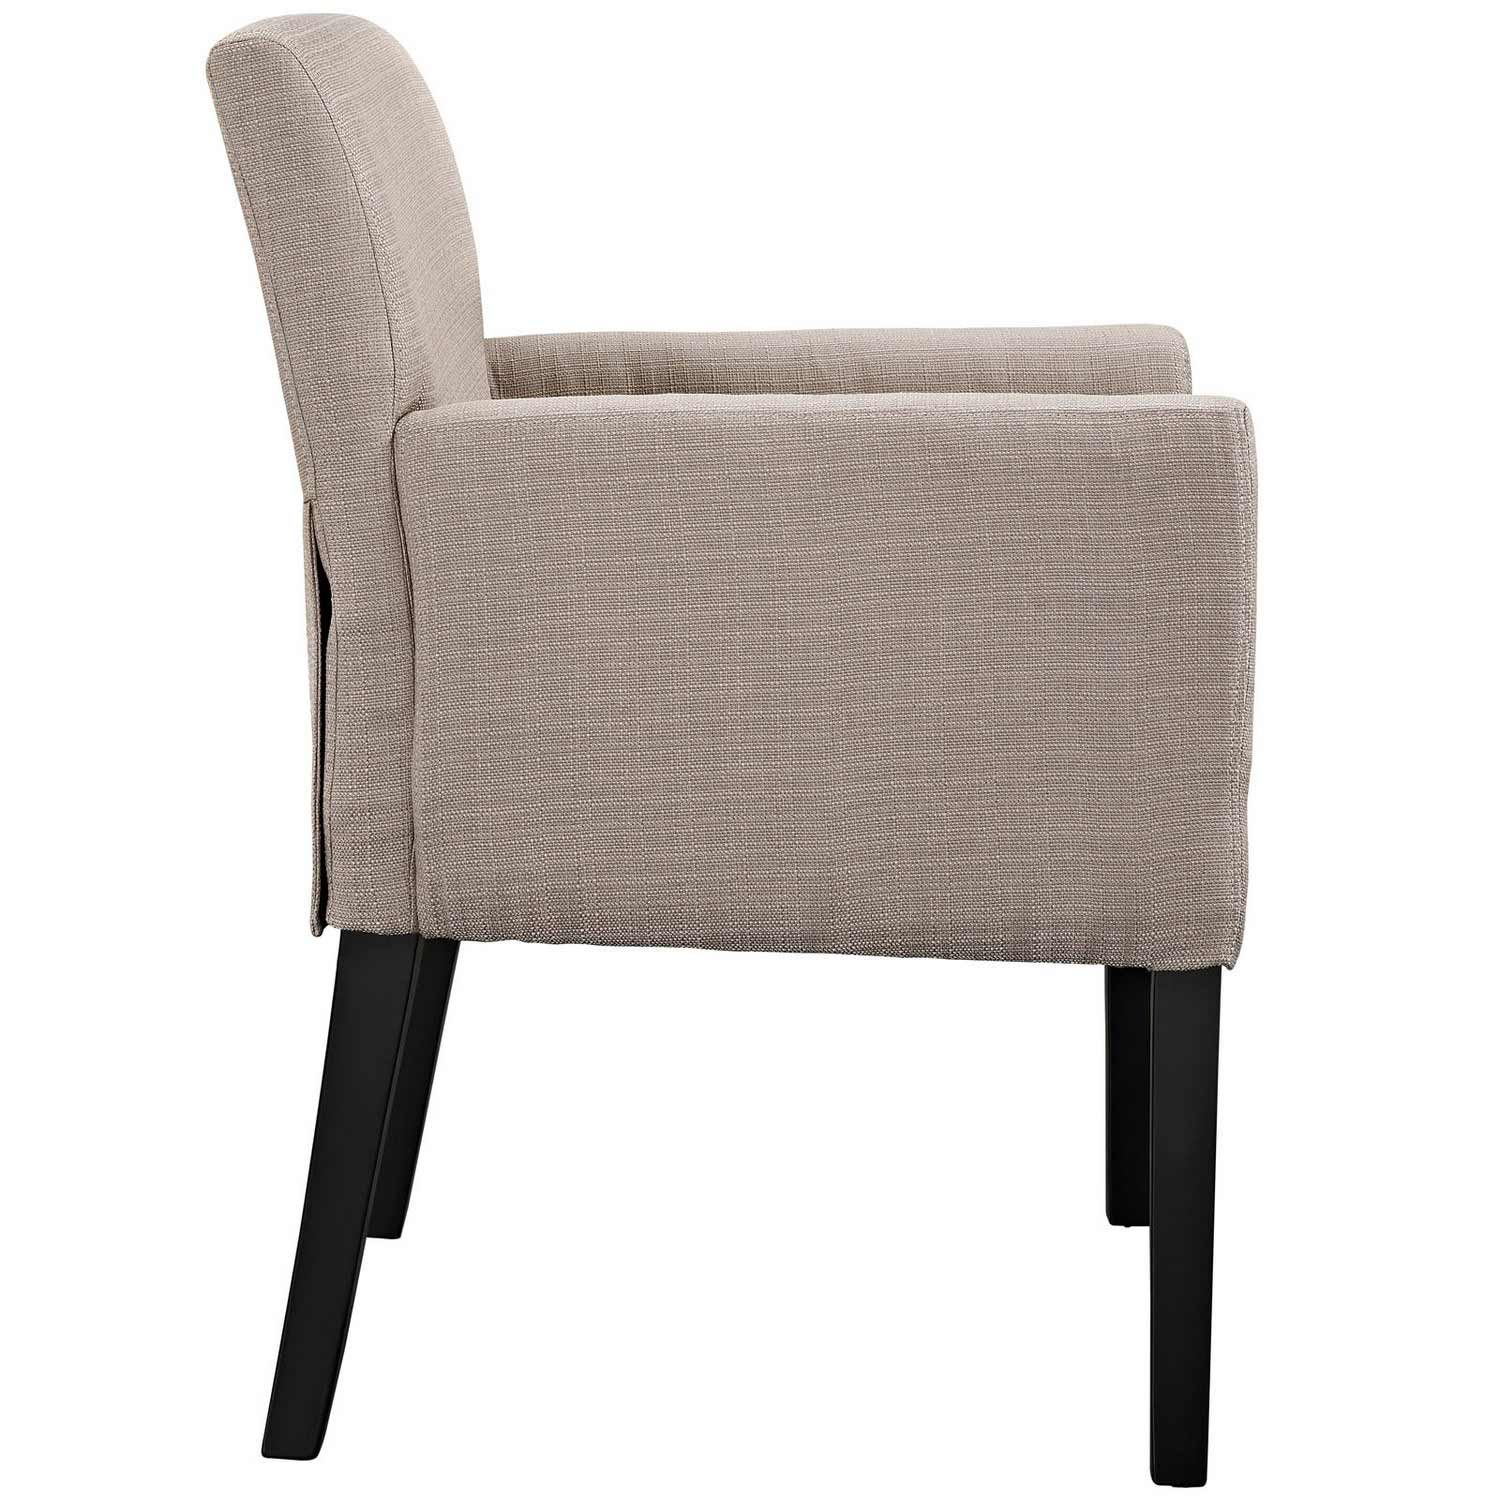 Modway Chloe Armchair Set of 2 - Beige